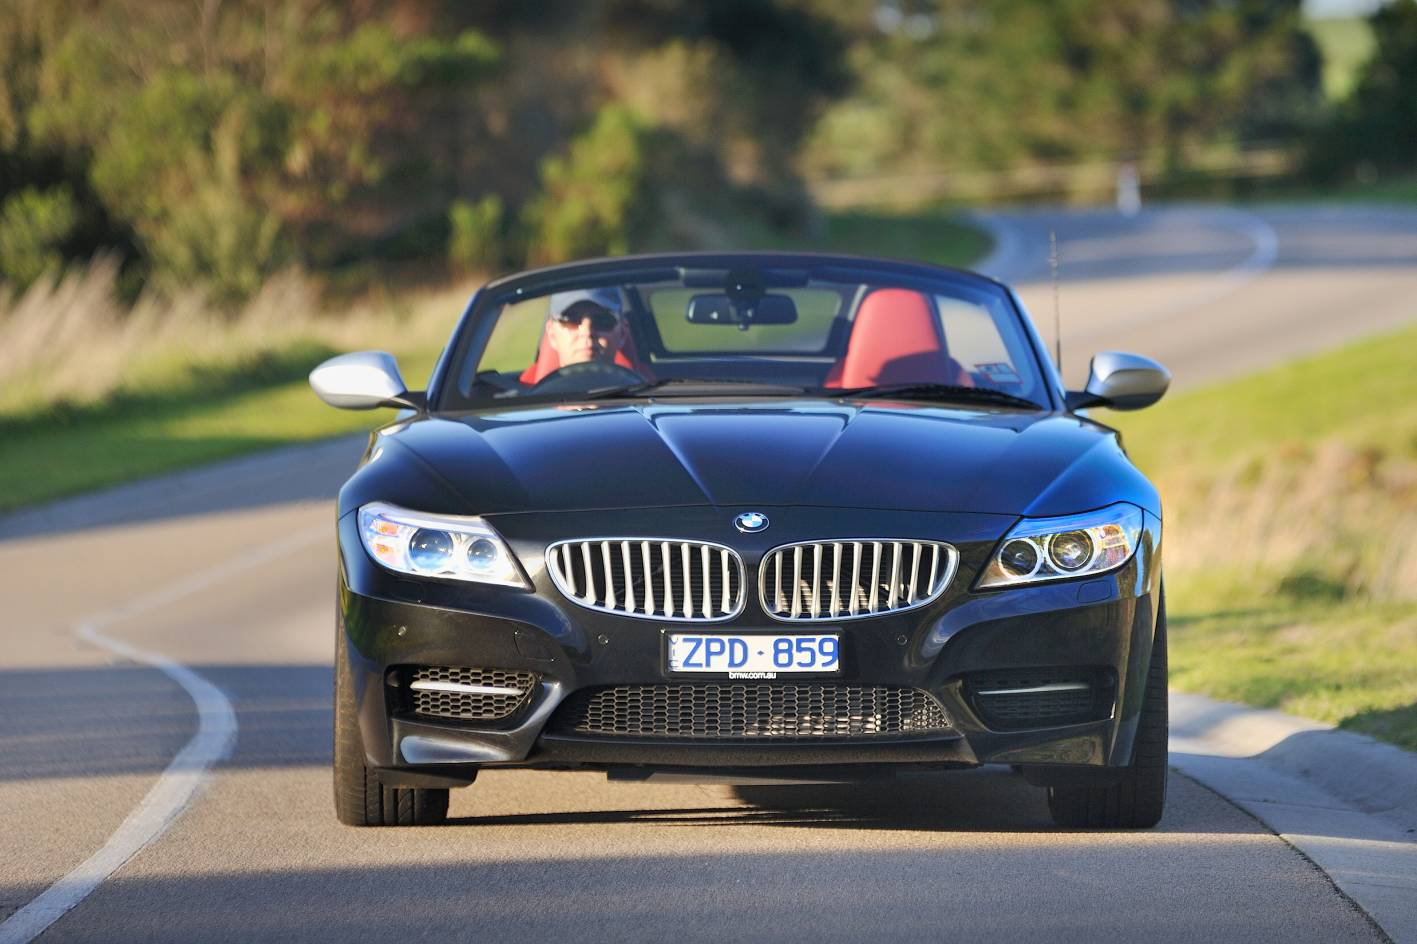 Lci Bmw E89 Z4 Pricing For Australia Released Autoevolution